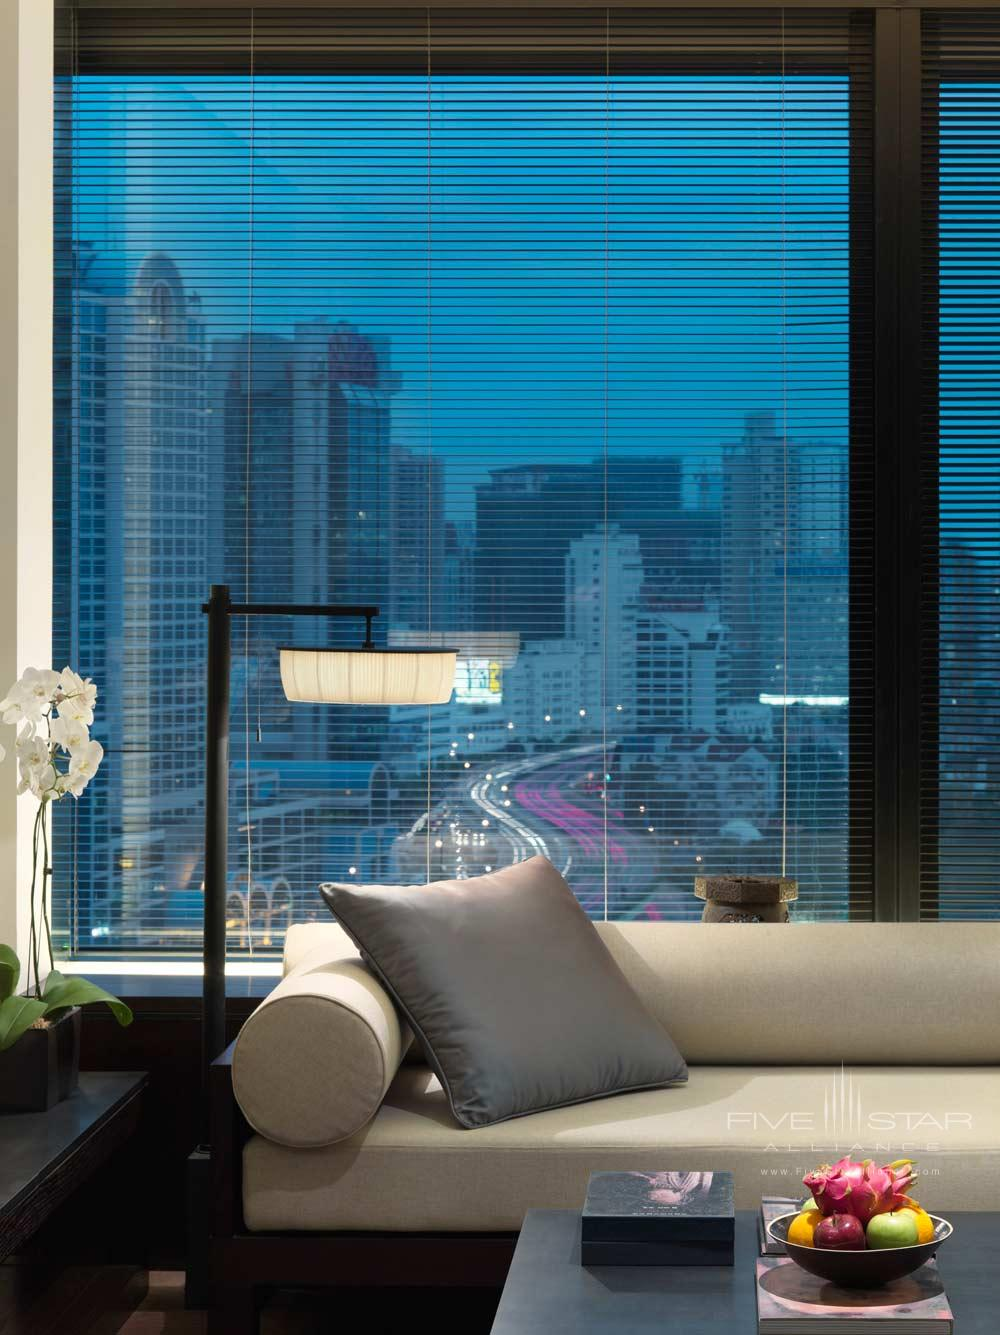 Deluxe Suite Living Room at The PuLi Hotel and Spa, Shanghai, China